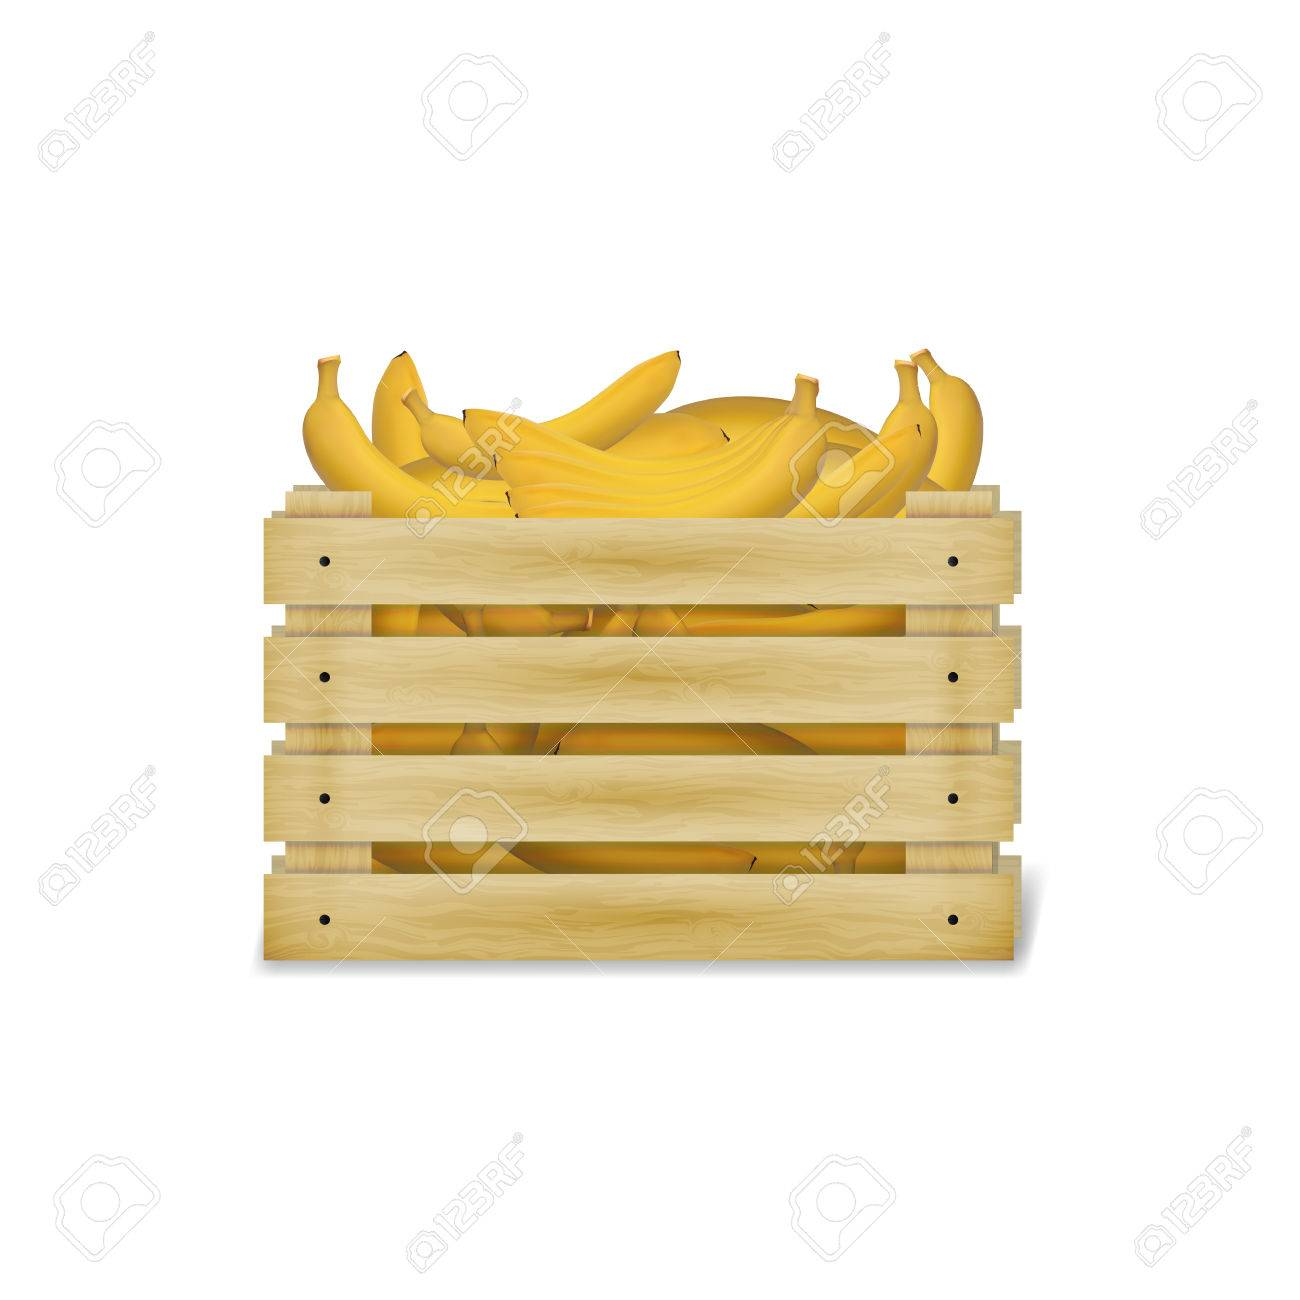 Illustration Of Wooden Box With Bananas Wooden Food Crate Isolated